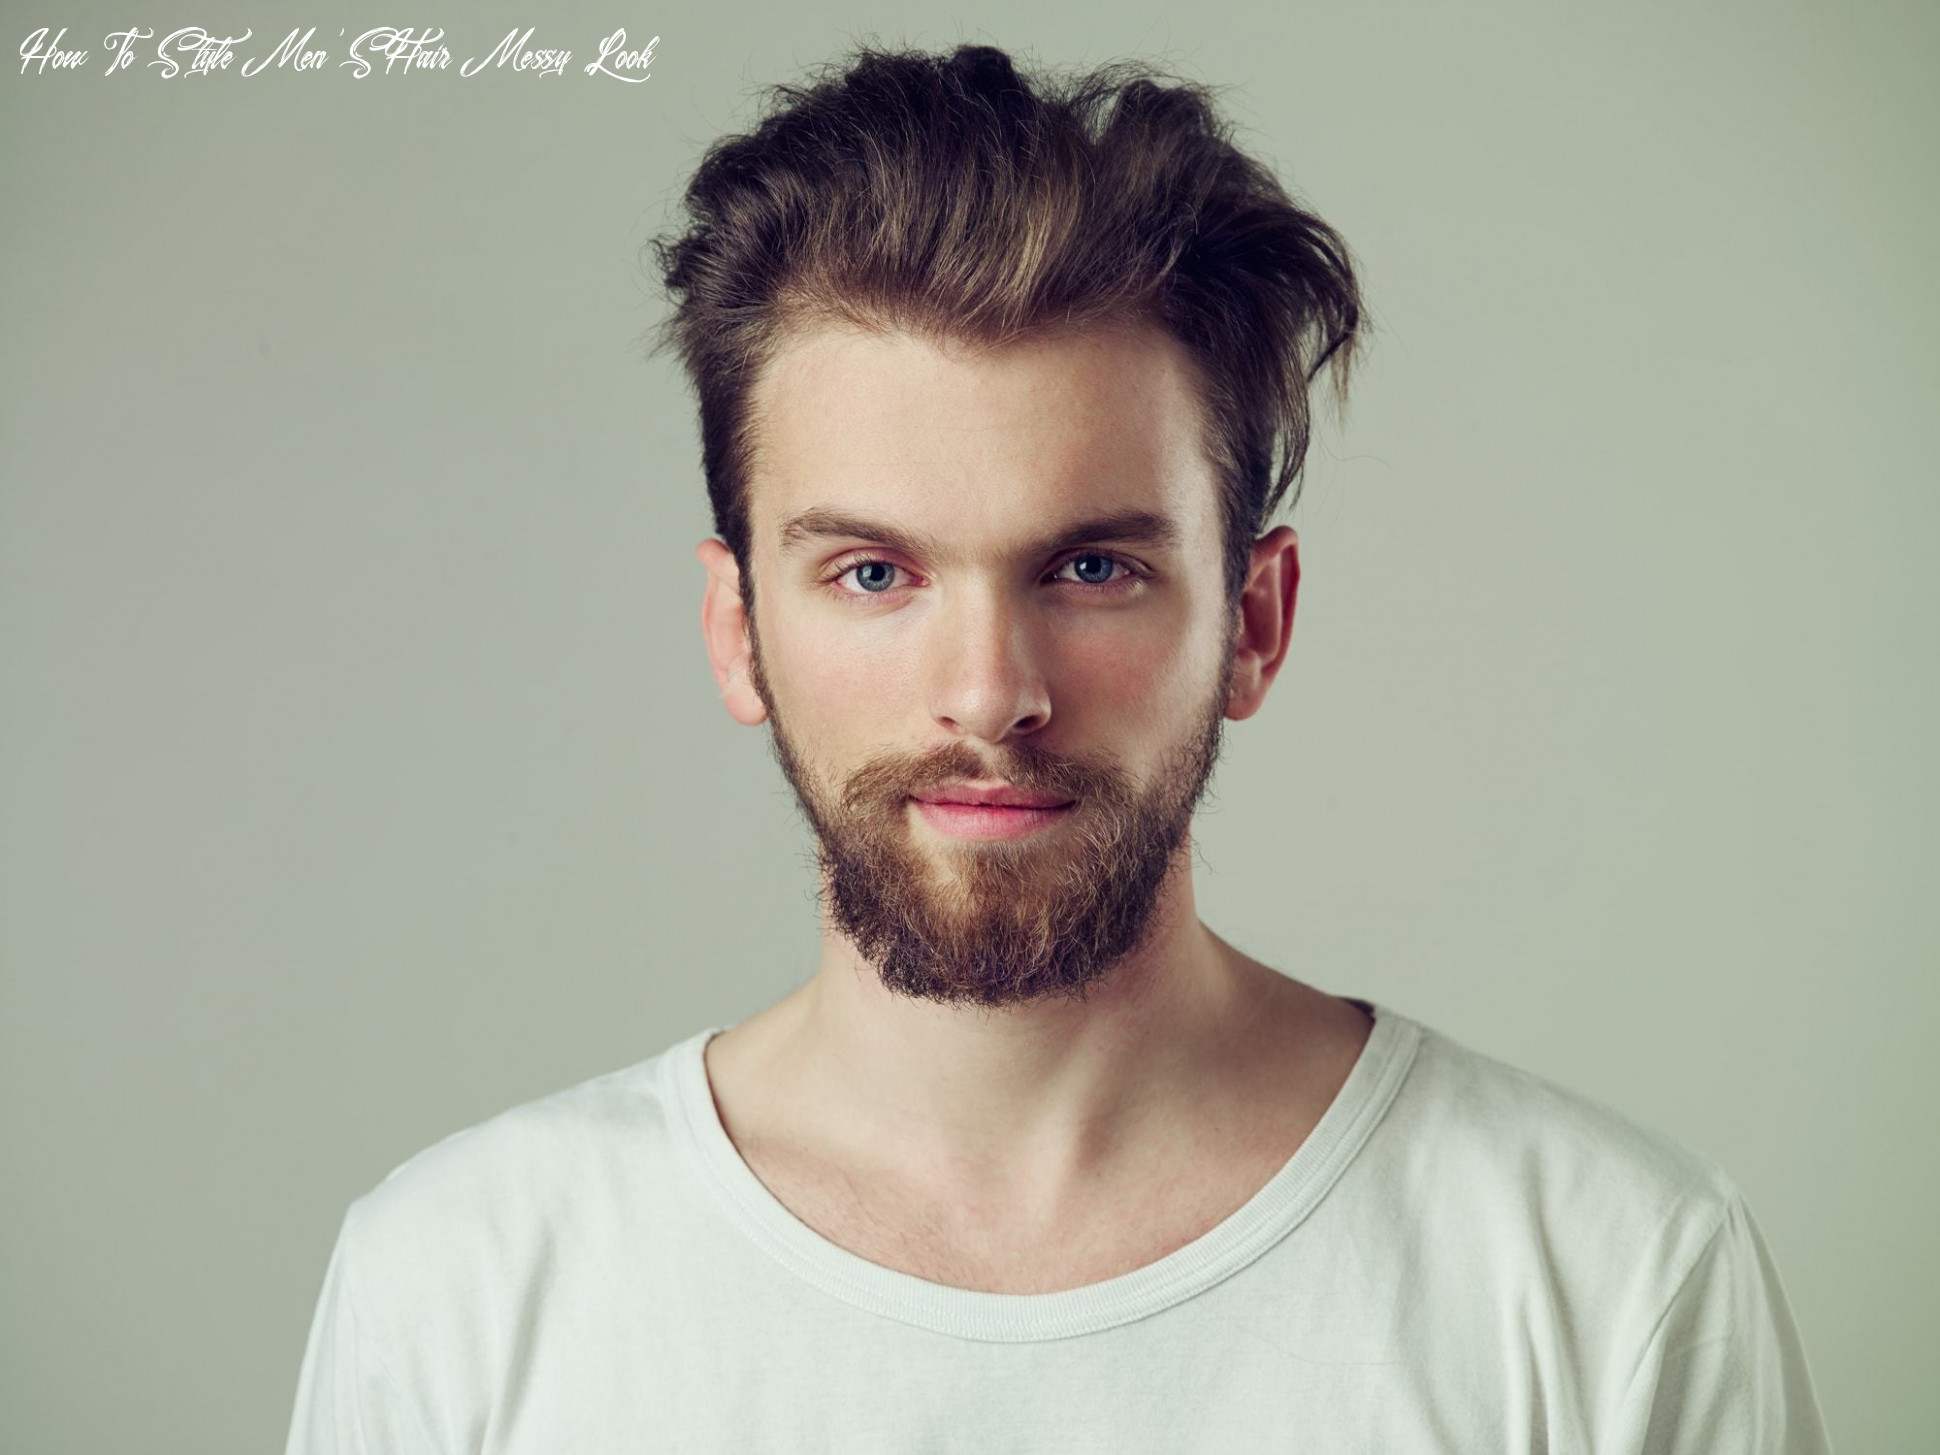 Messy Hairstyles for Men in 11   All Things Hair US